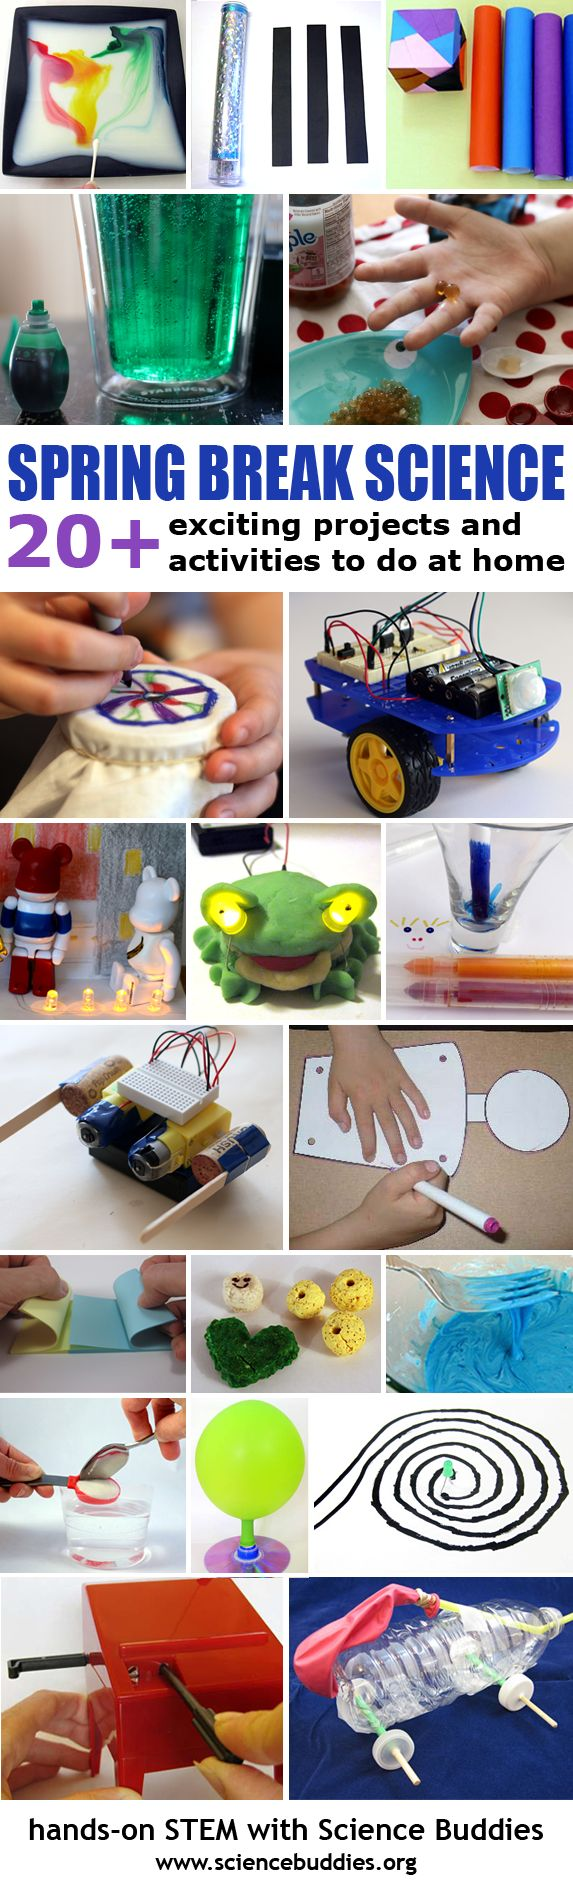 Spring Break Science / Collection of Great Hands-on Science Activities and Projects for kids to do over spring break. Fun for school or home!